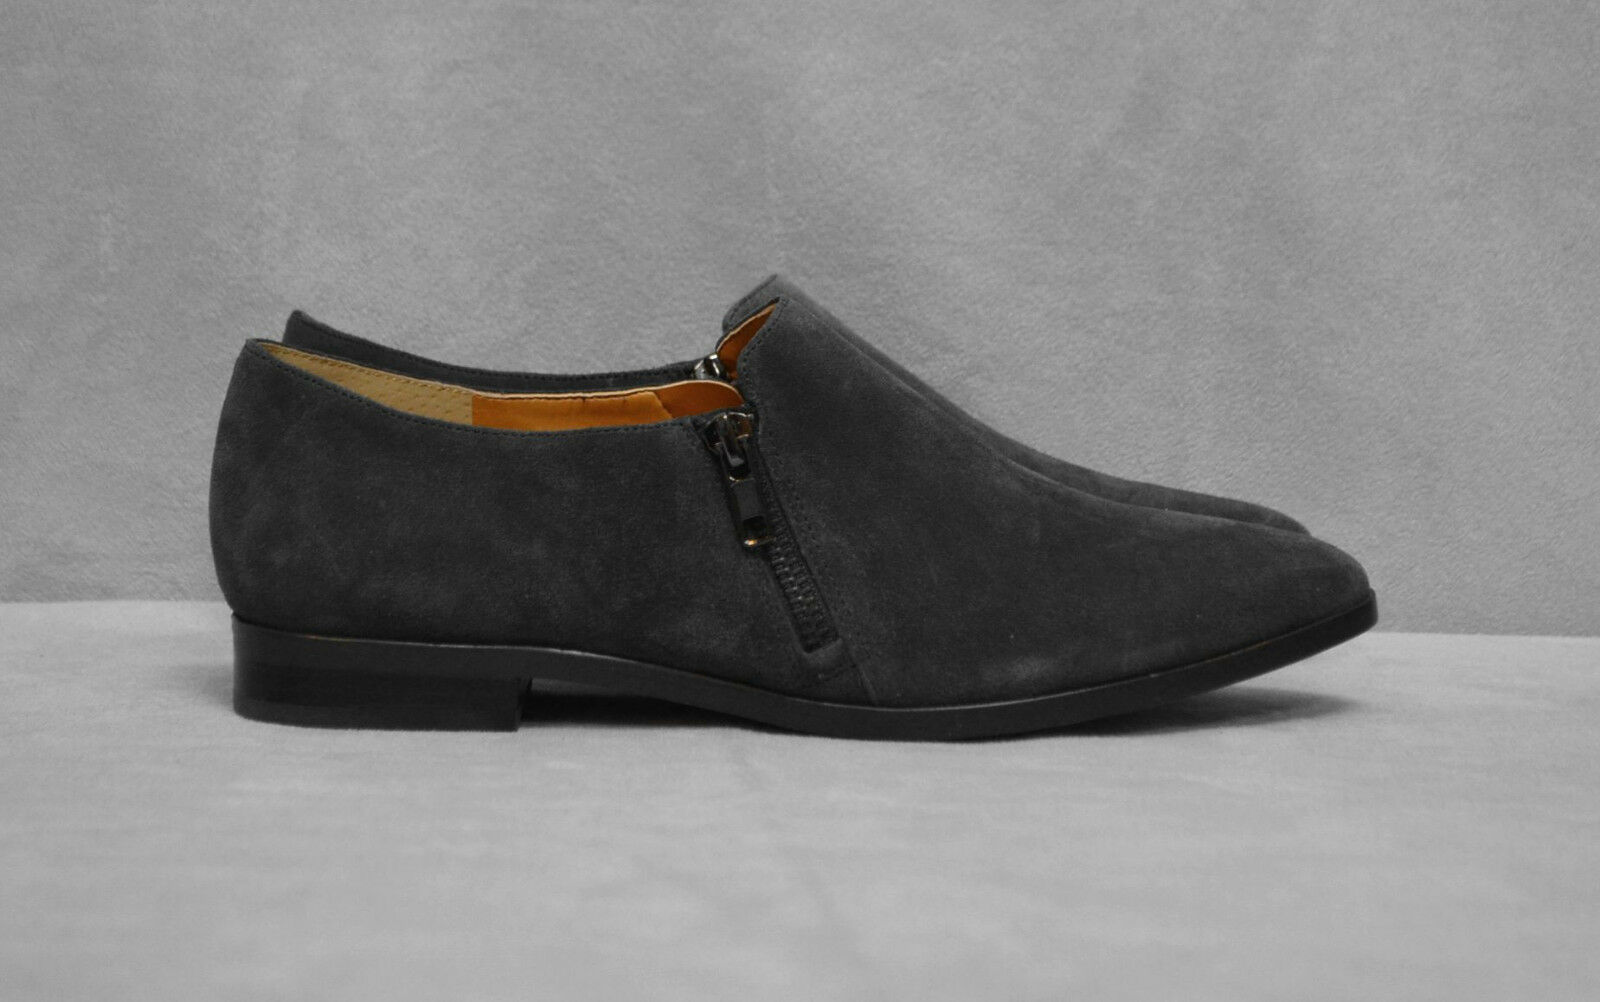 B0 NEW NEW NEW J CREW Heather Charcoal Suede Double Zip Loafer shoes C9838 Size 8.5 M 93a1bb